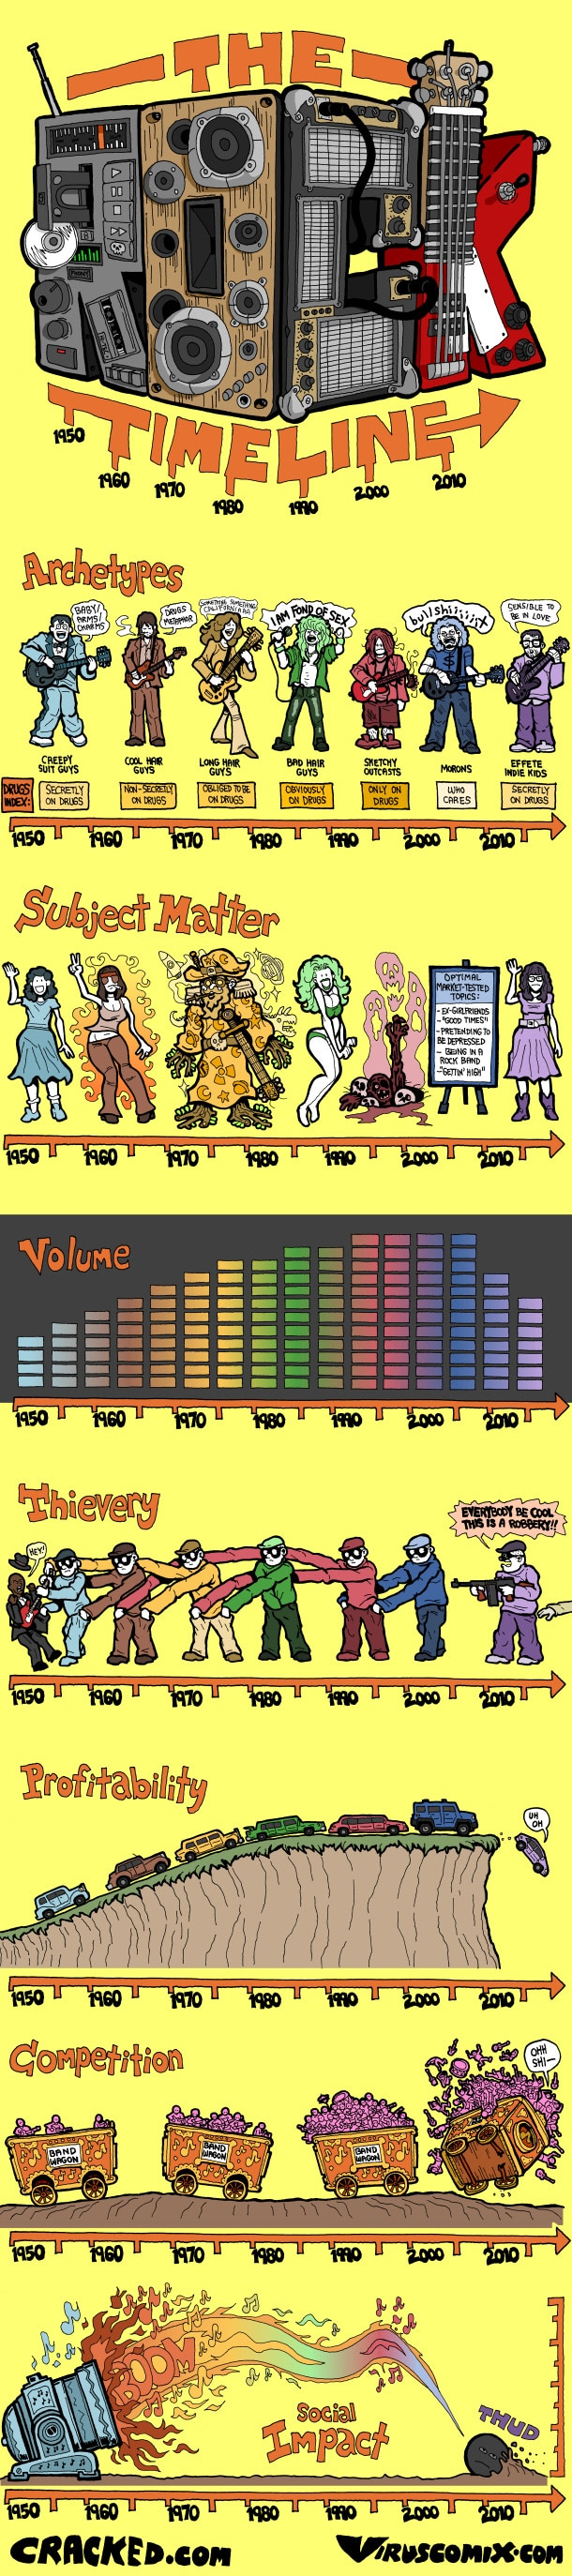 The Rock History Timeline Infographic